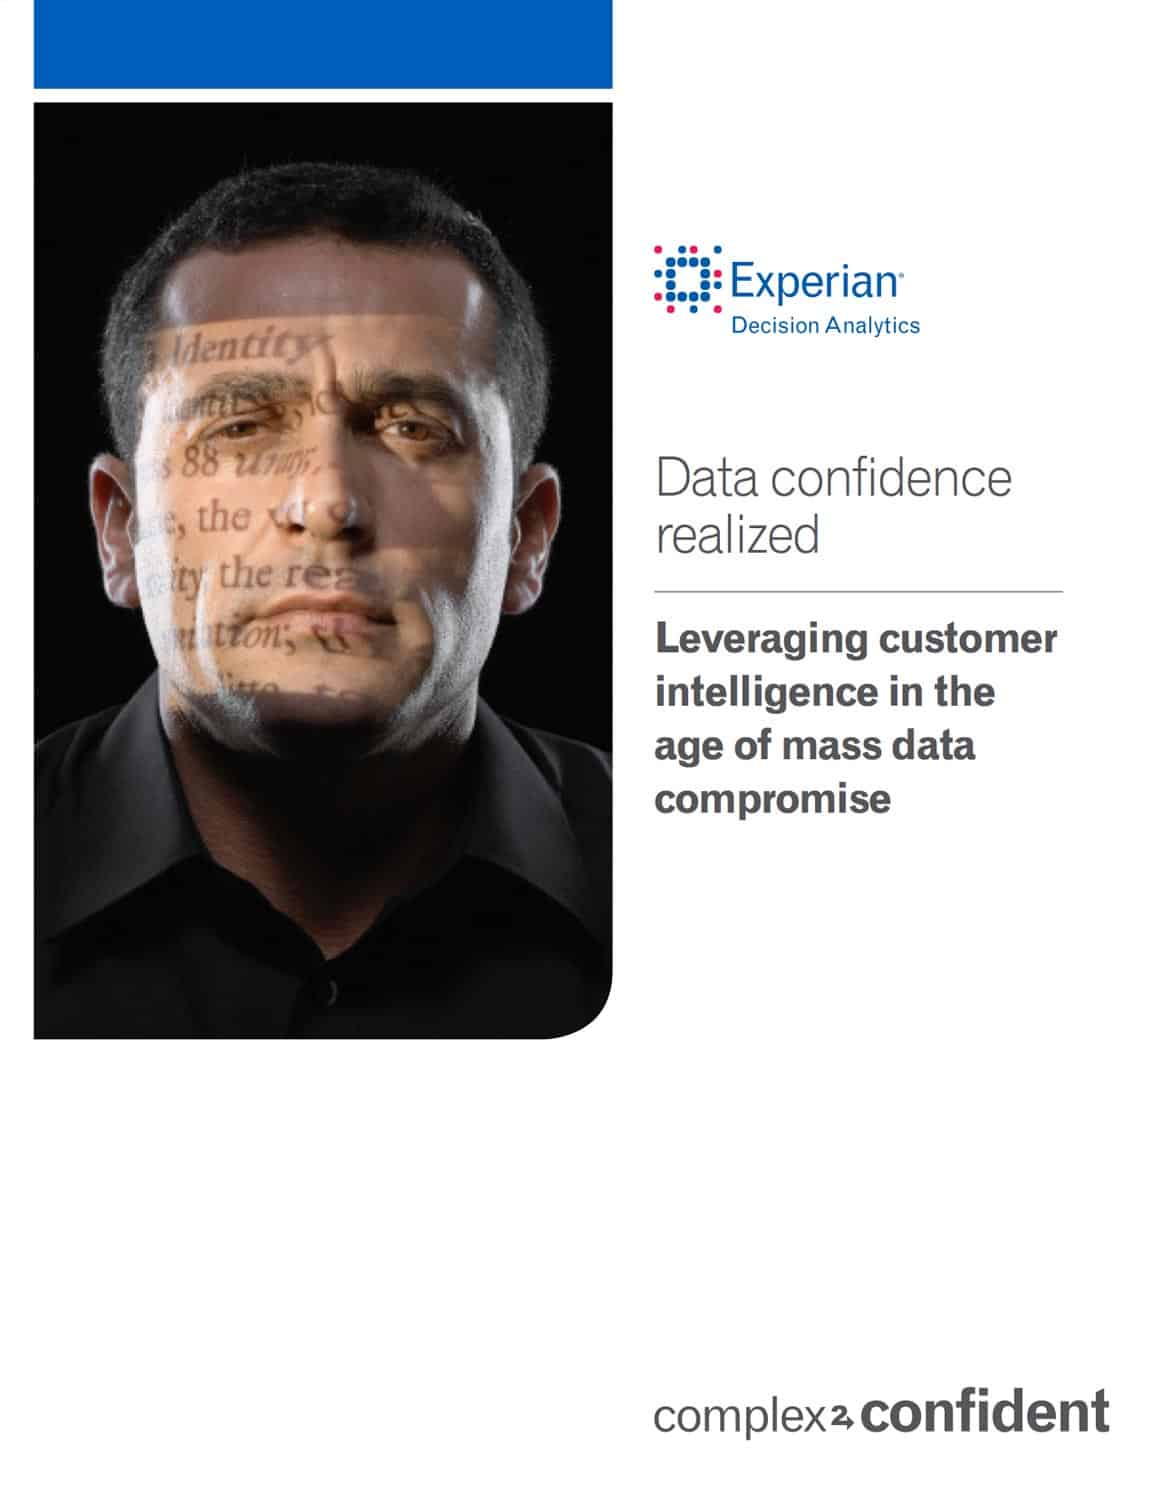 Experian White Paper